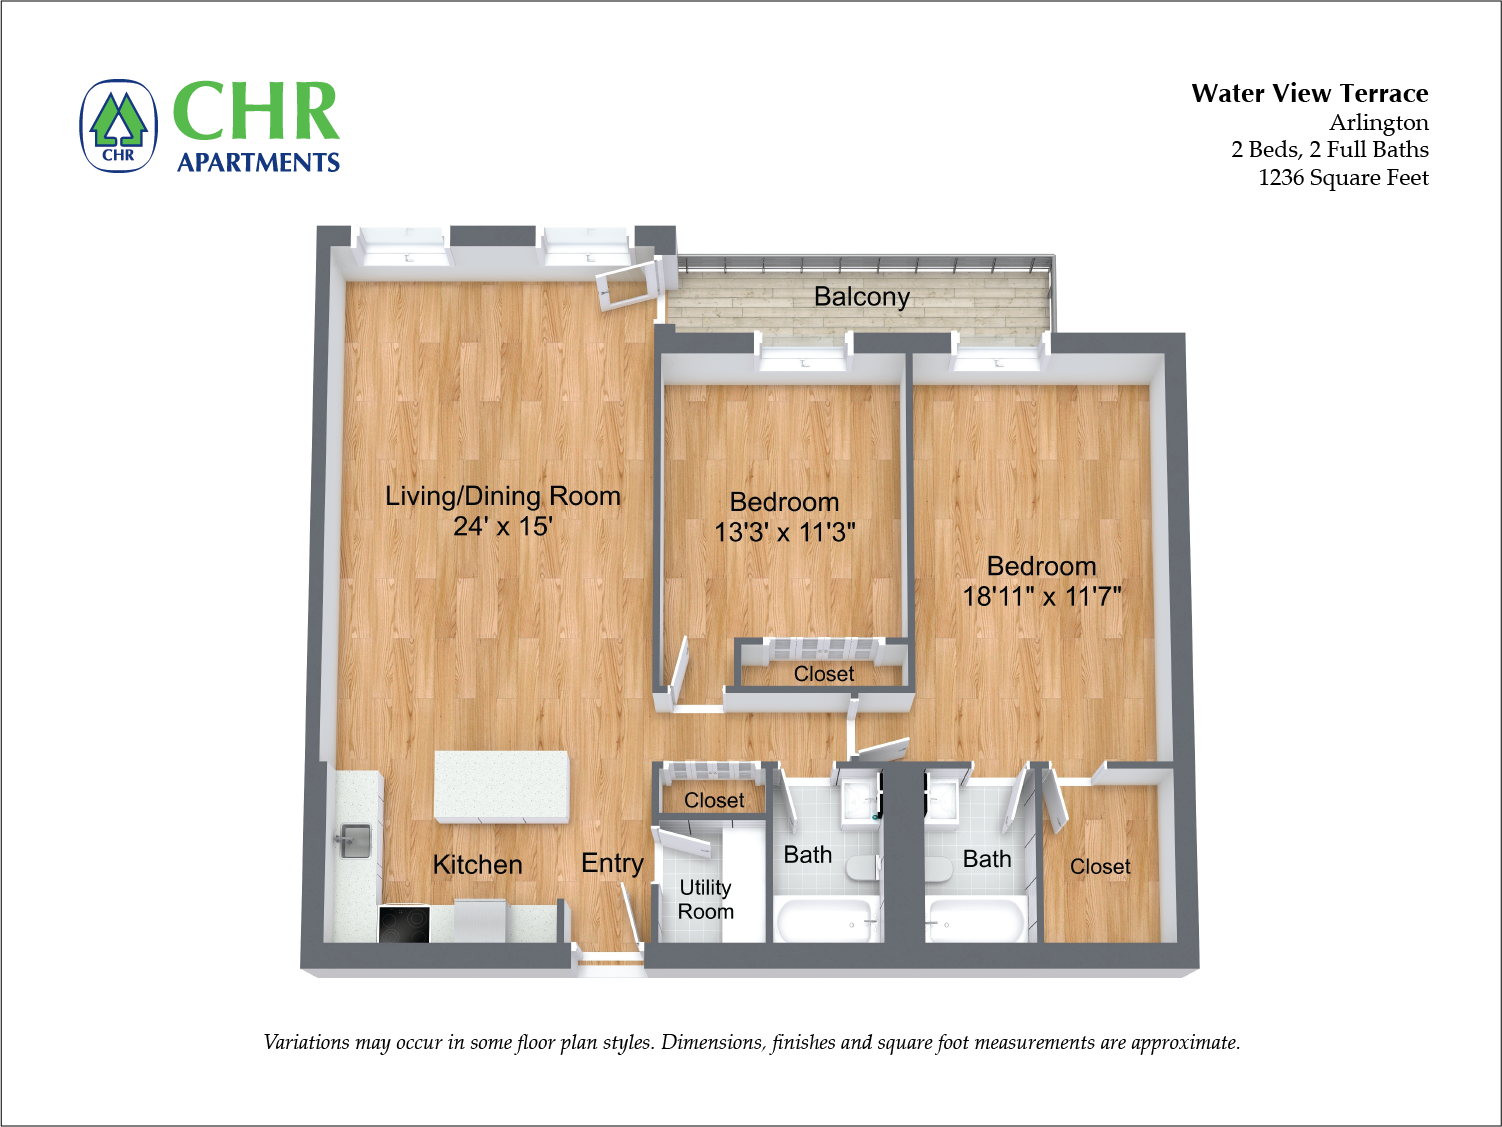 Click to view 2 BR Large w/ Balcony floor plan gallery